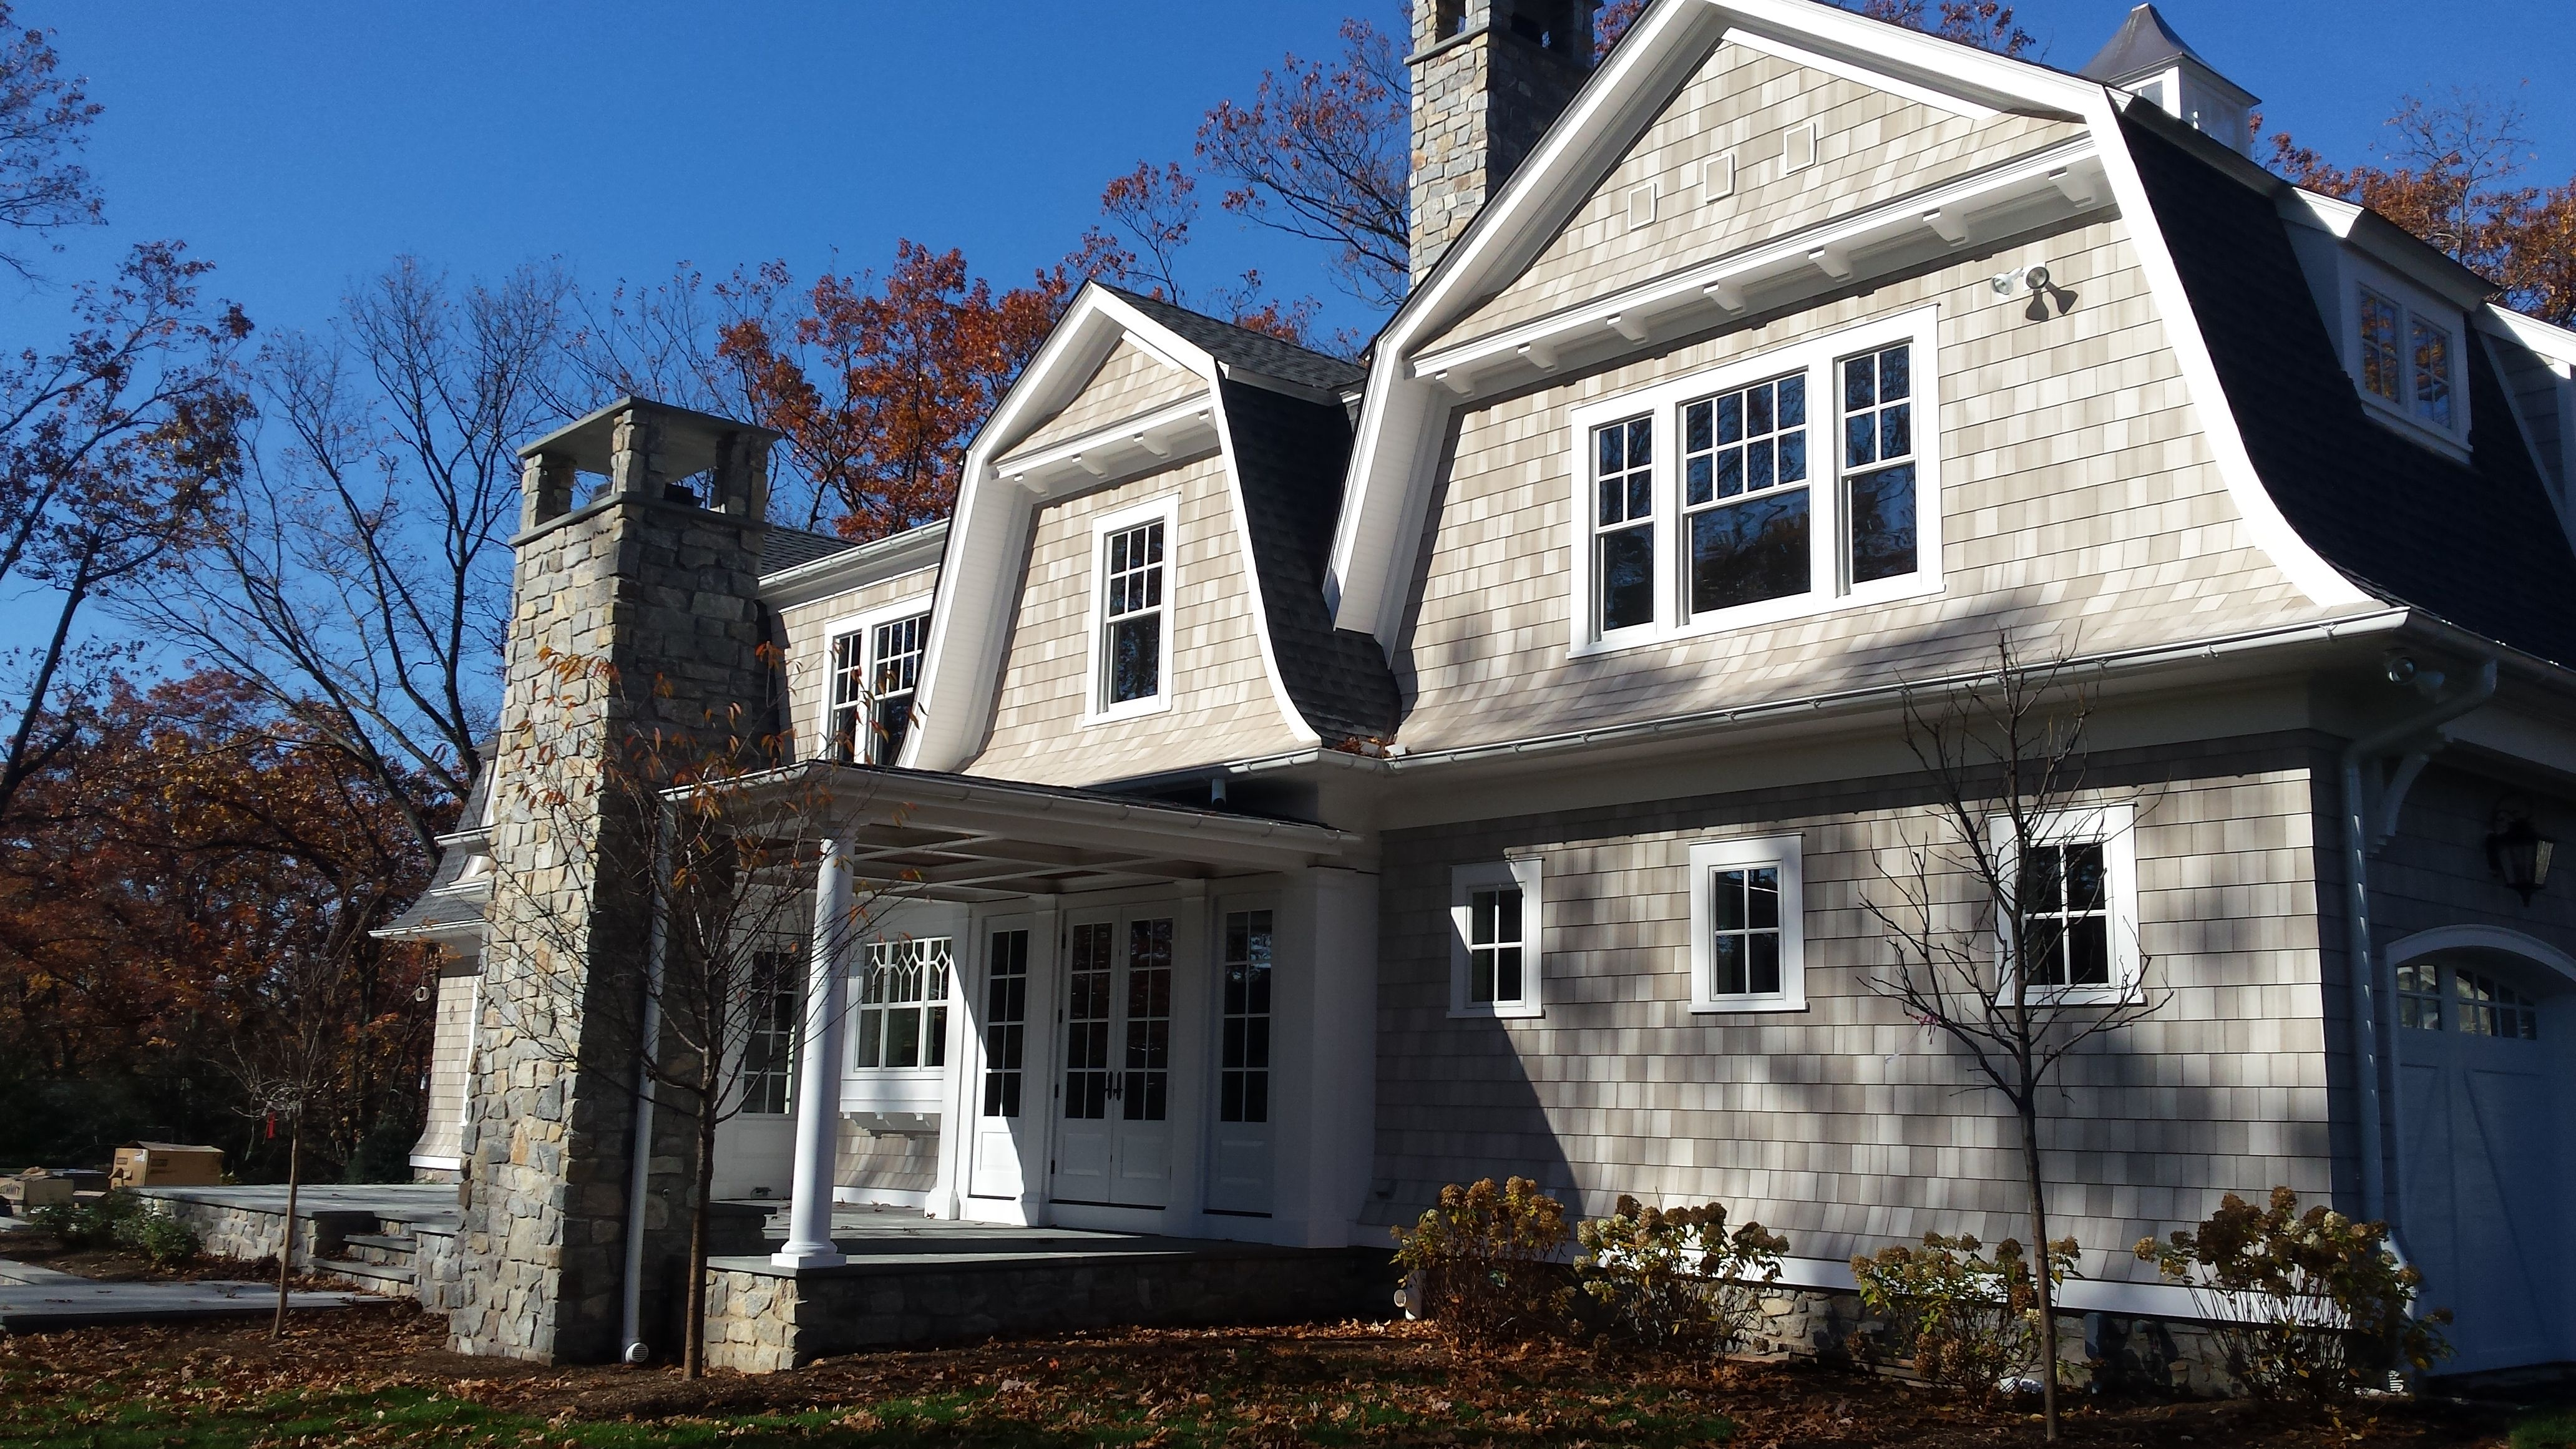 James Hardie Nucedar Dealer And Installer Creo Construction Chester Nj House Styles Shingle Style Construction Services